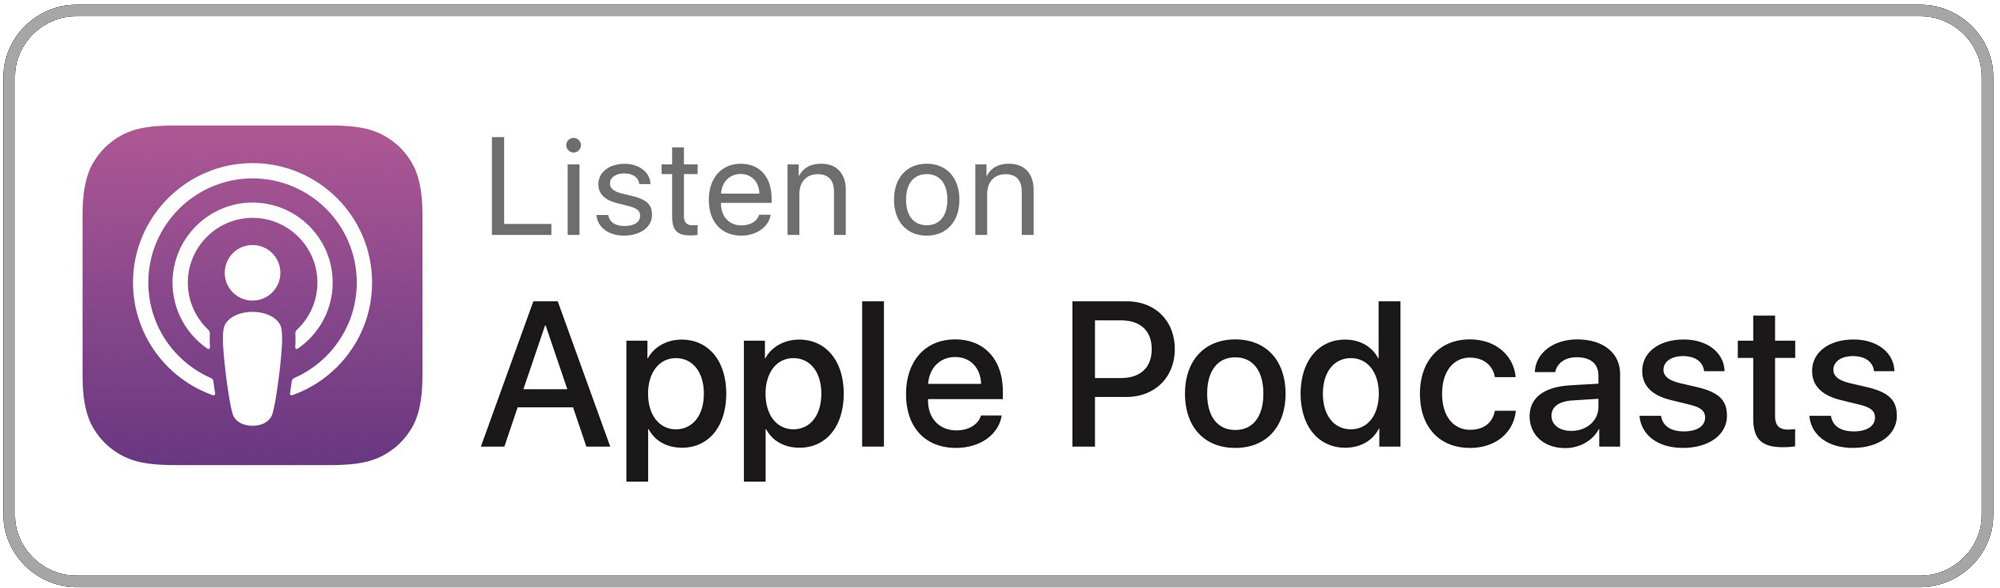 Listen on Apple Podcasts